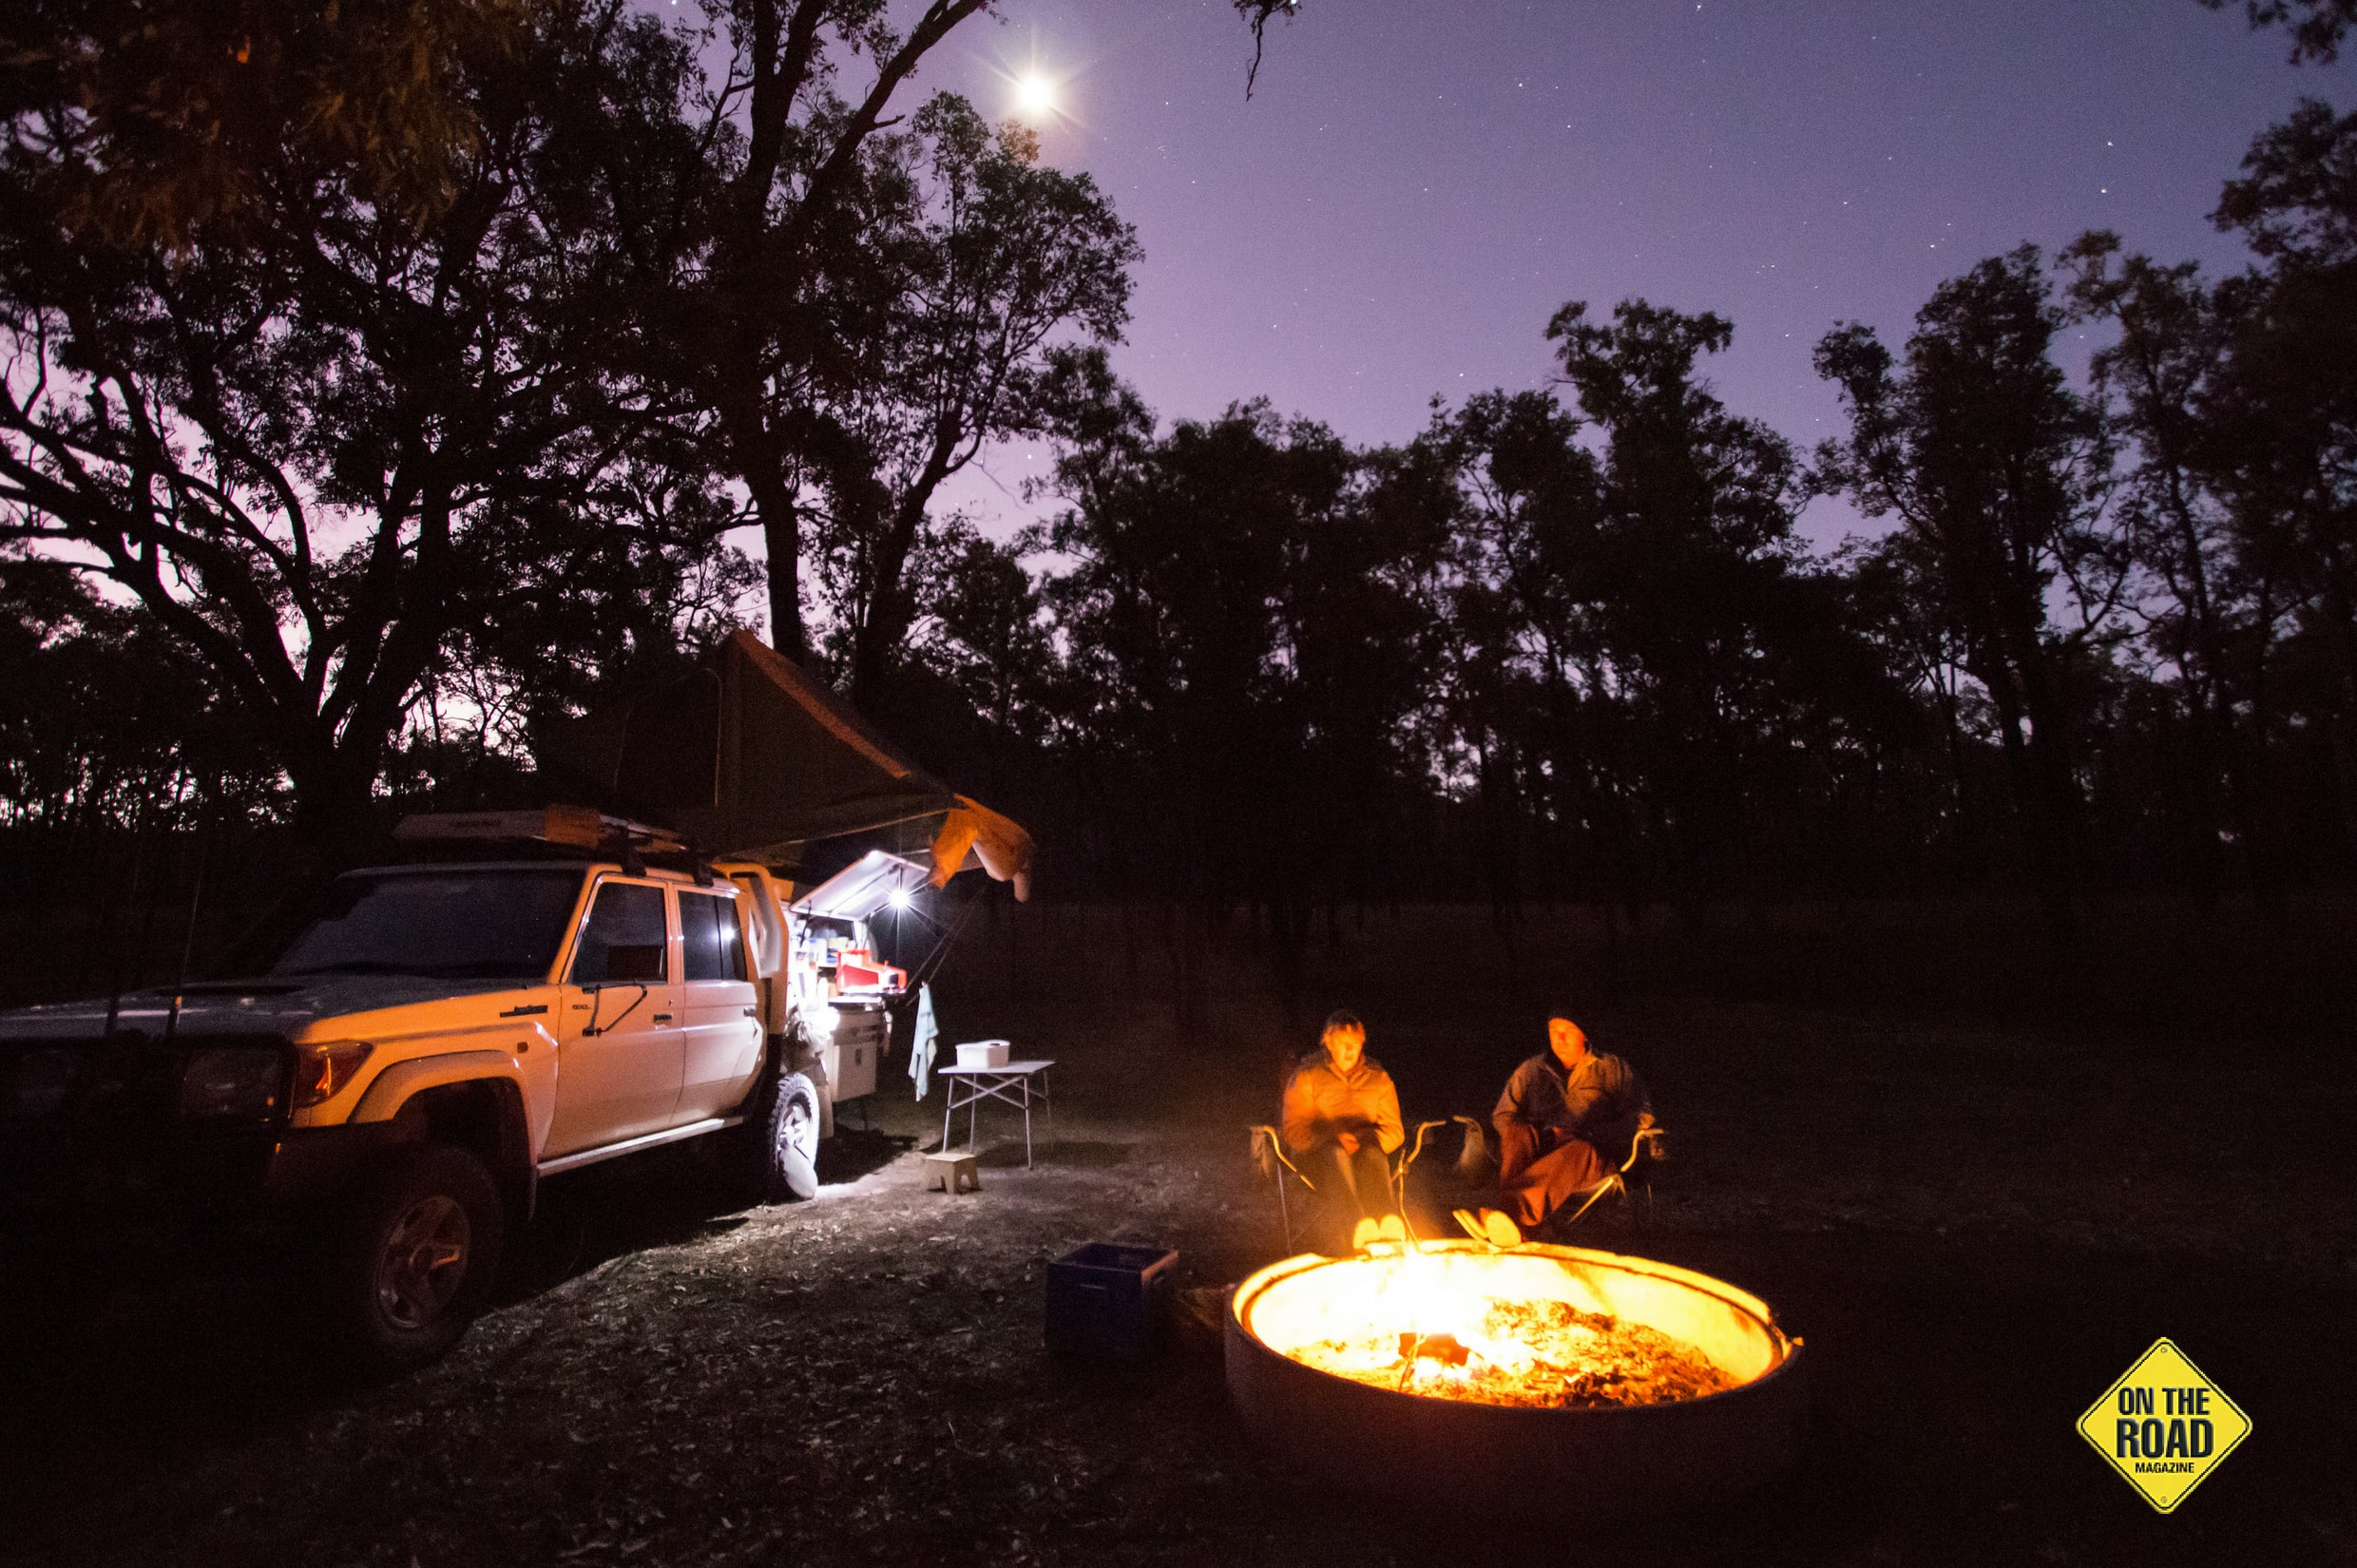 A top night was had under a star filled night at Top Moffatt campground.